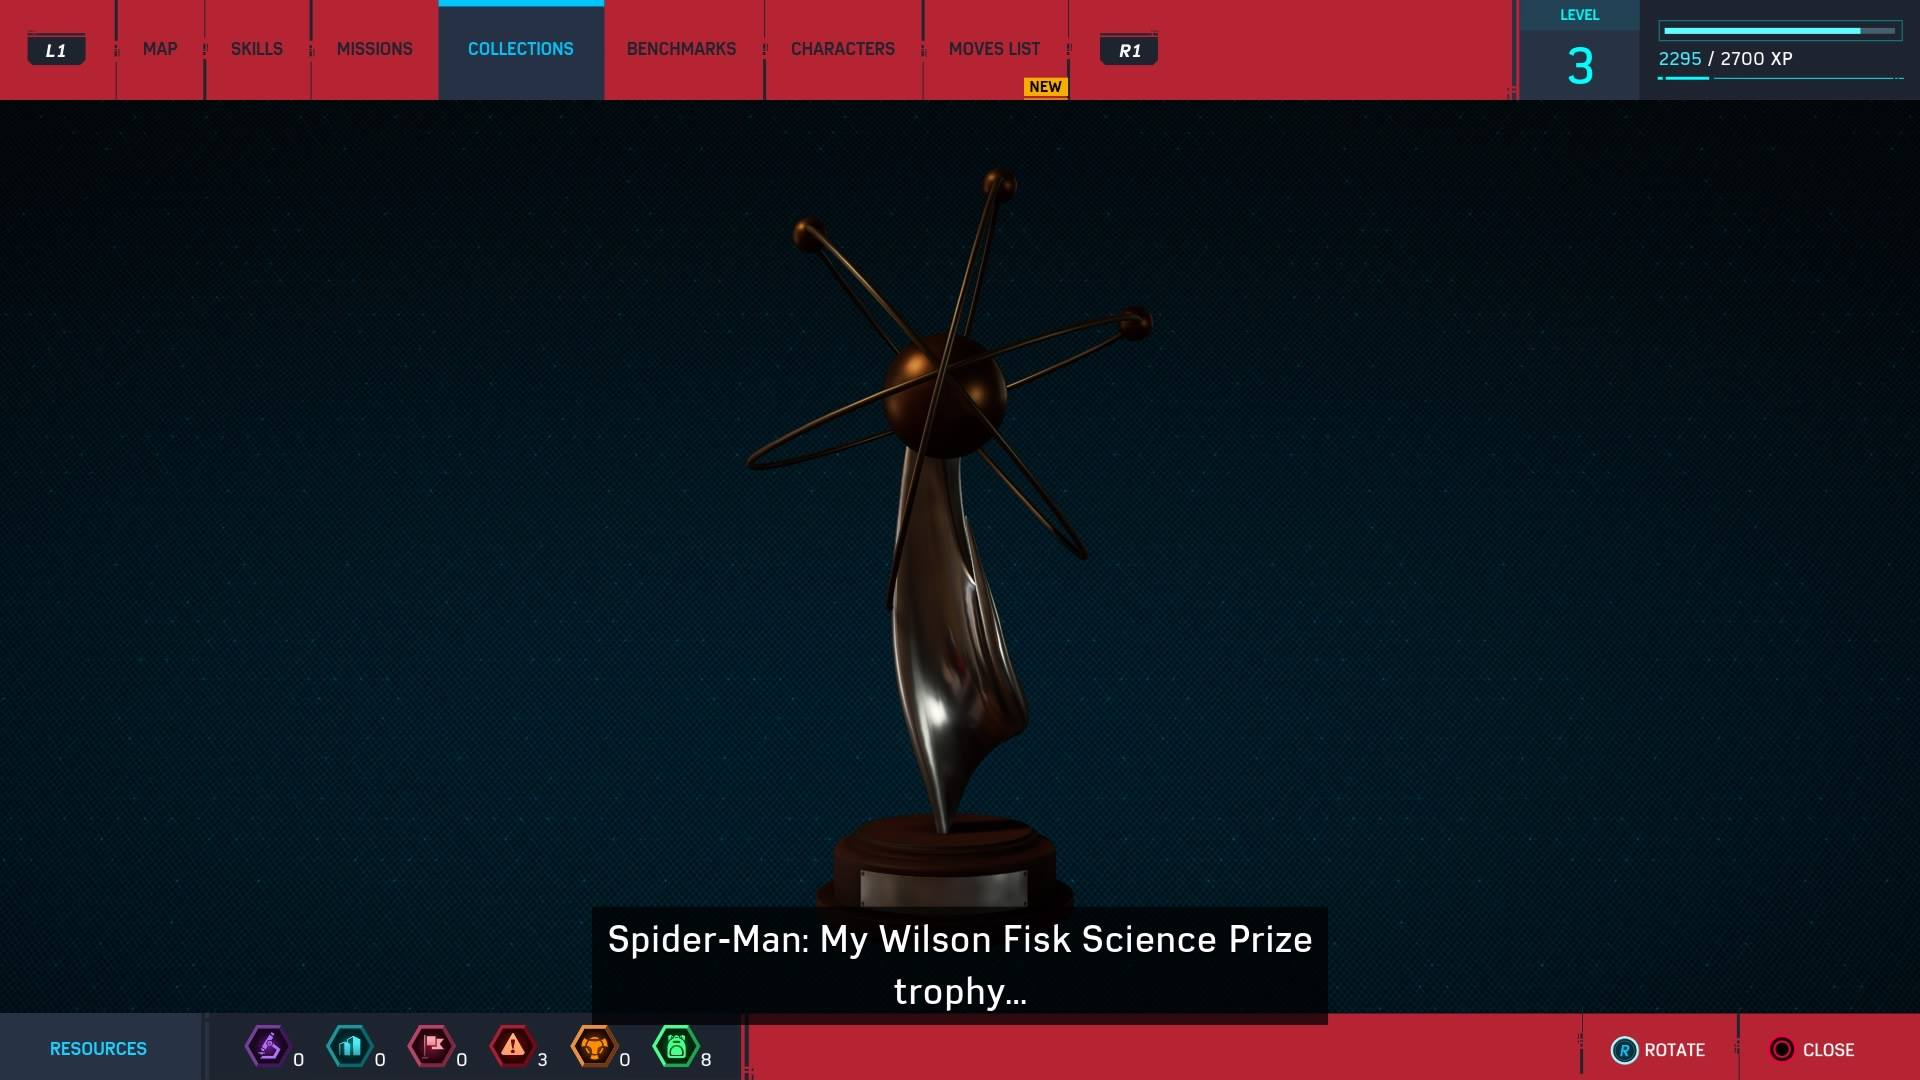 1. Science Trophy